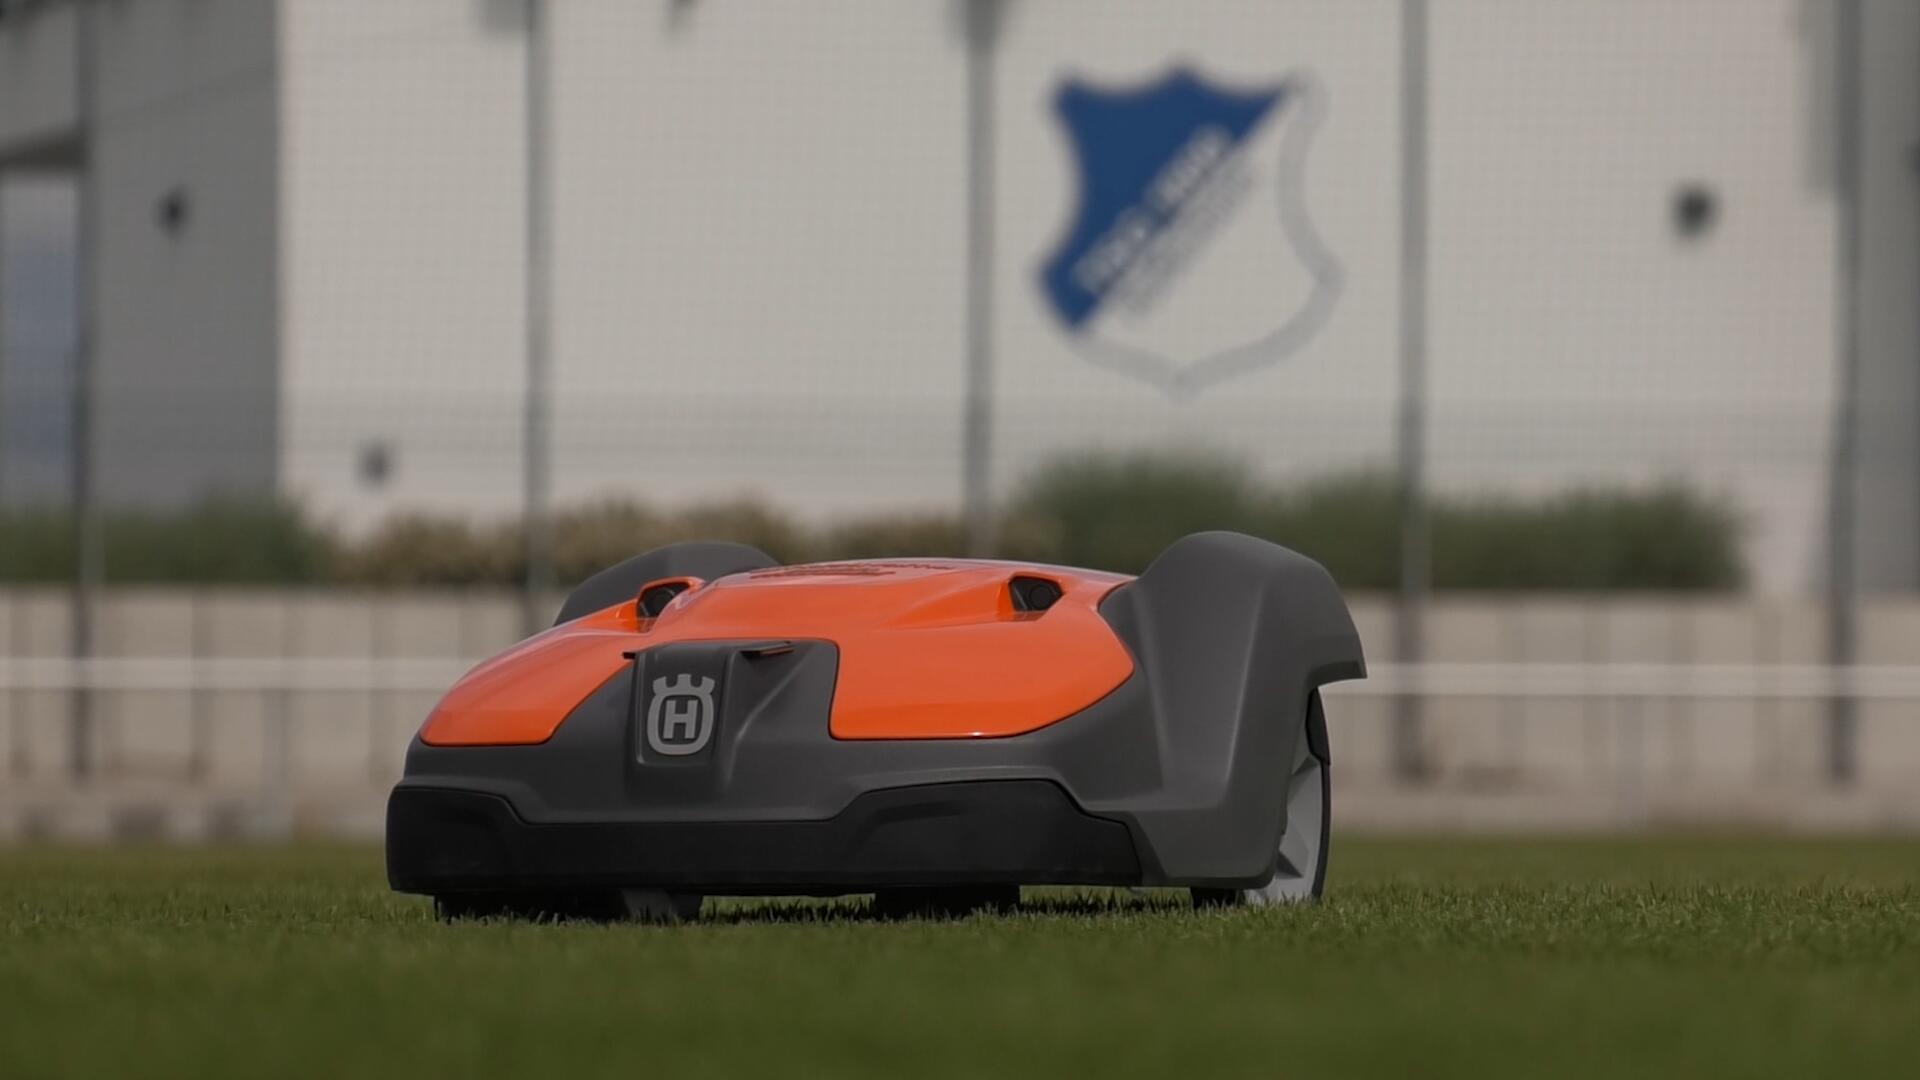 Automower 550 at Hoffenheim football club